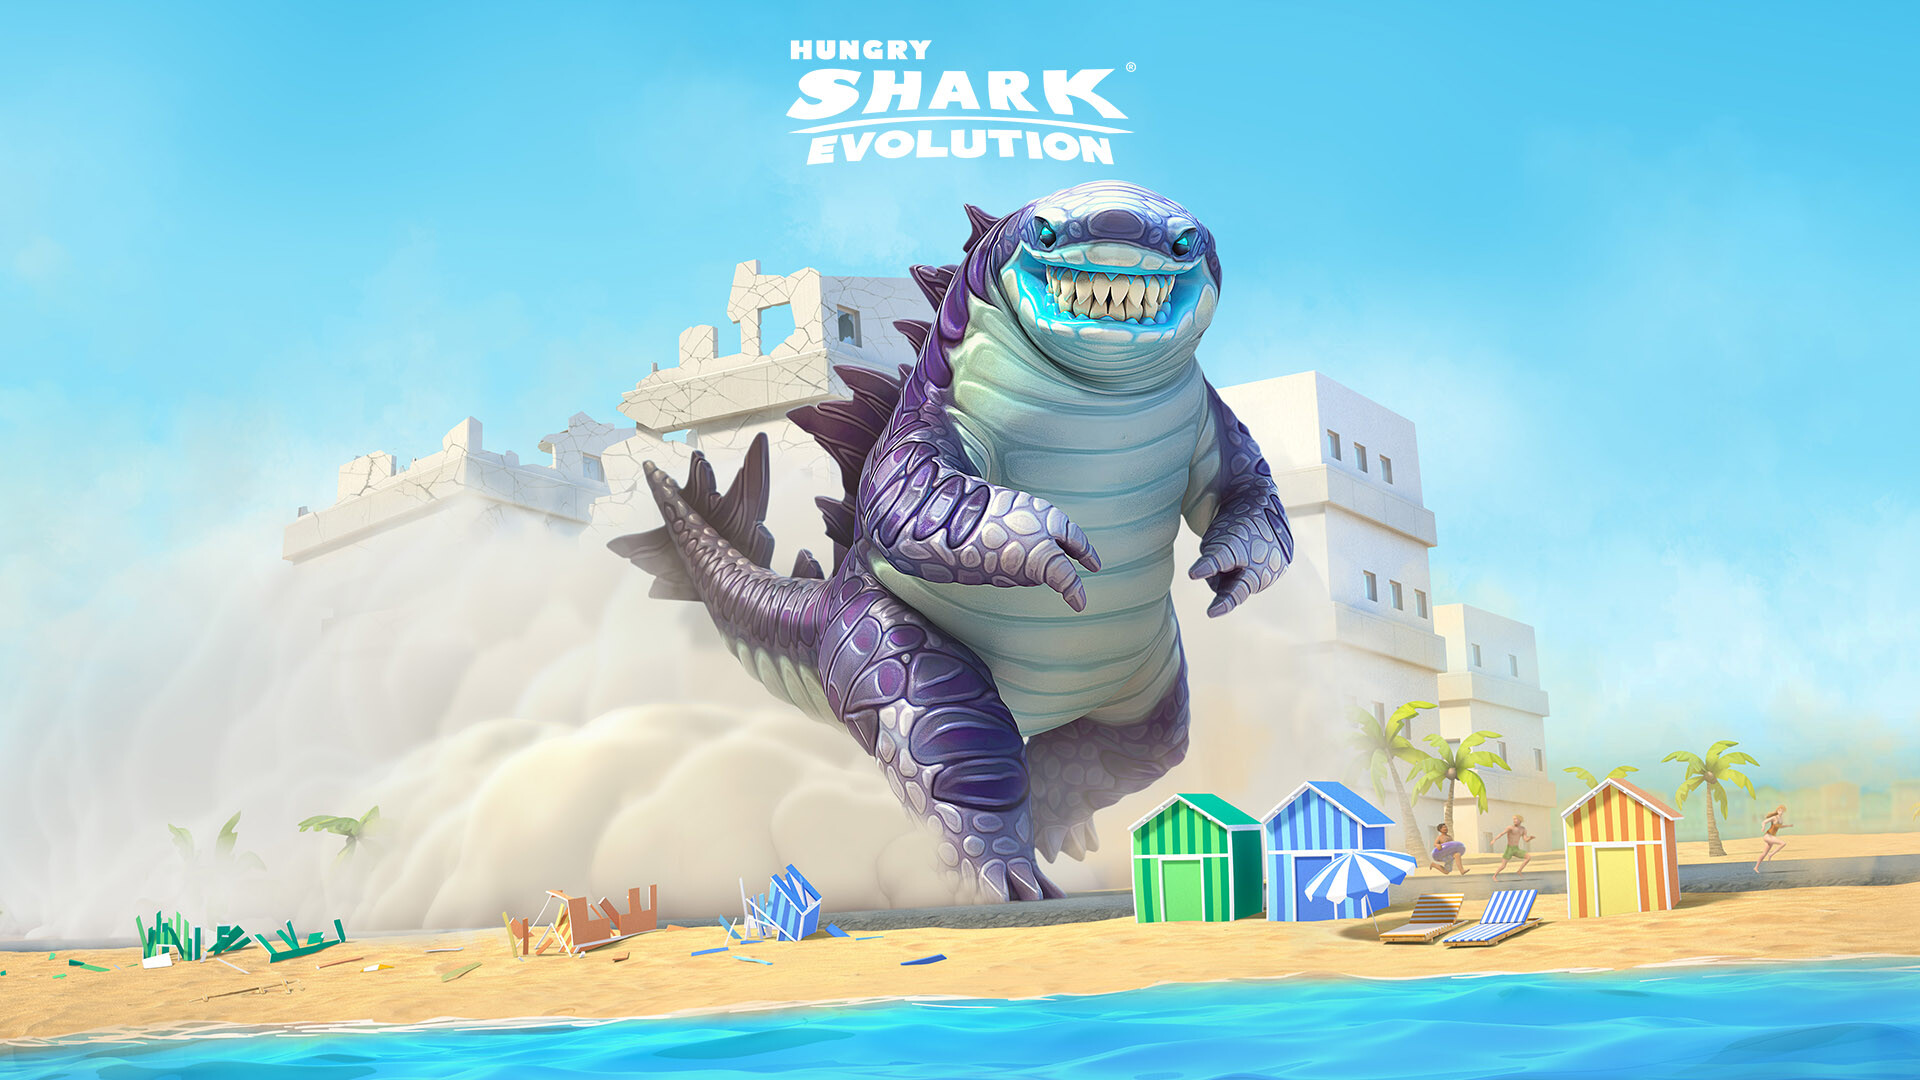 Thomas veyrat hse 1920x1080 splashscreen sharkzilla update